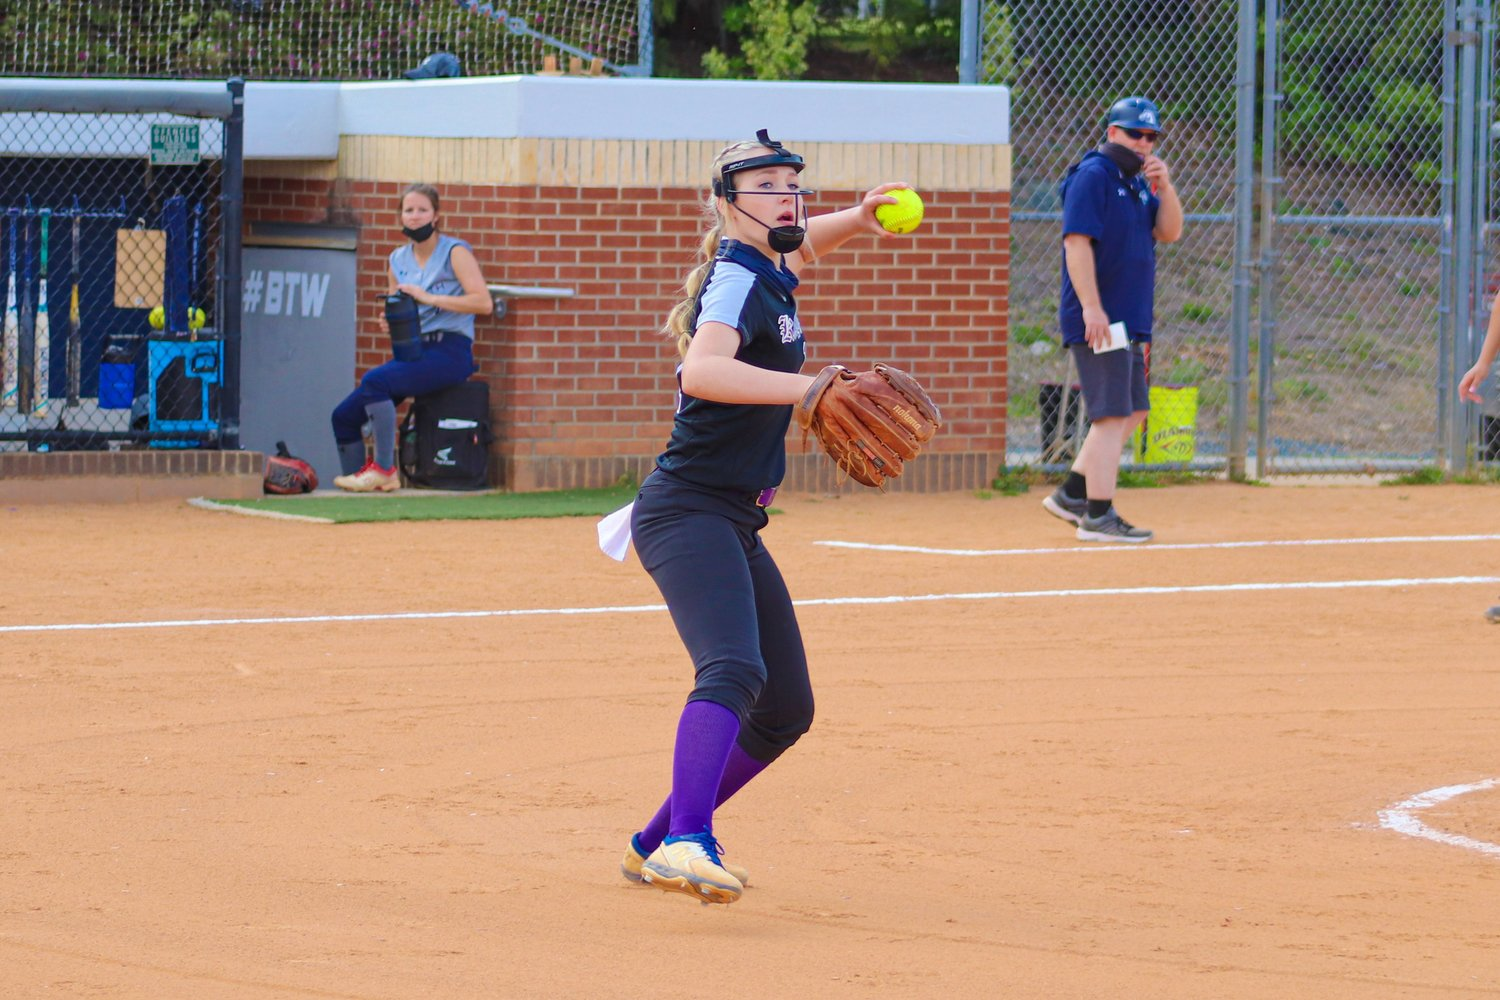 Chatham Charter senior pitcher Sydney Bowman looks to throw the ball to first base in her team's 4-3 loss to Forsyth Country Day on Thursday, April 15. Bowman pitched 5 full innings, allowing 9 hits and 4 earned runs, striking out 6.